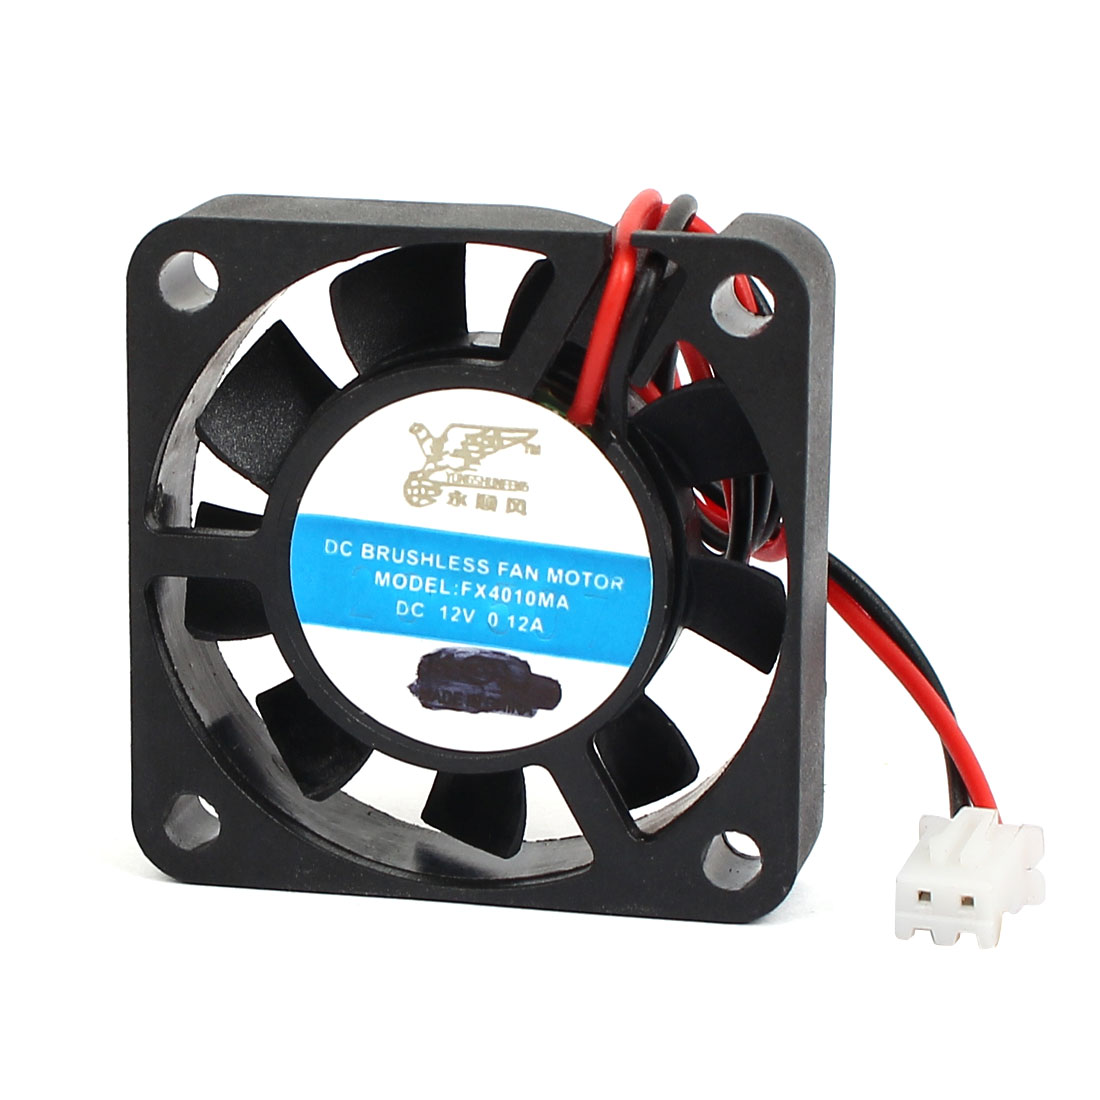 4pcs DC 12V 9 Cutters 2-Wire Computer Case CPU Cooler Brushless Cooling Fan 4 x 4 x 1cm